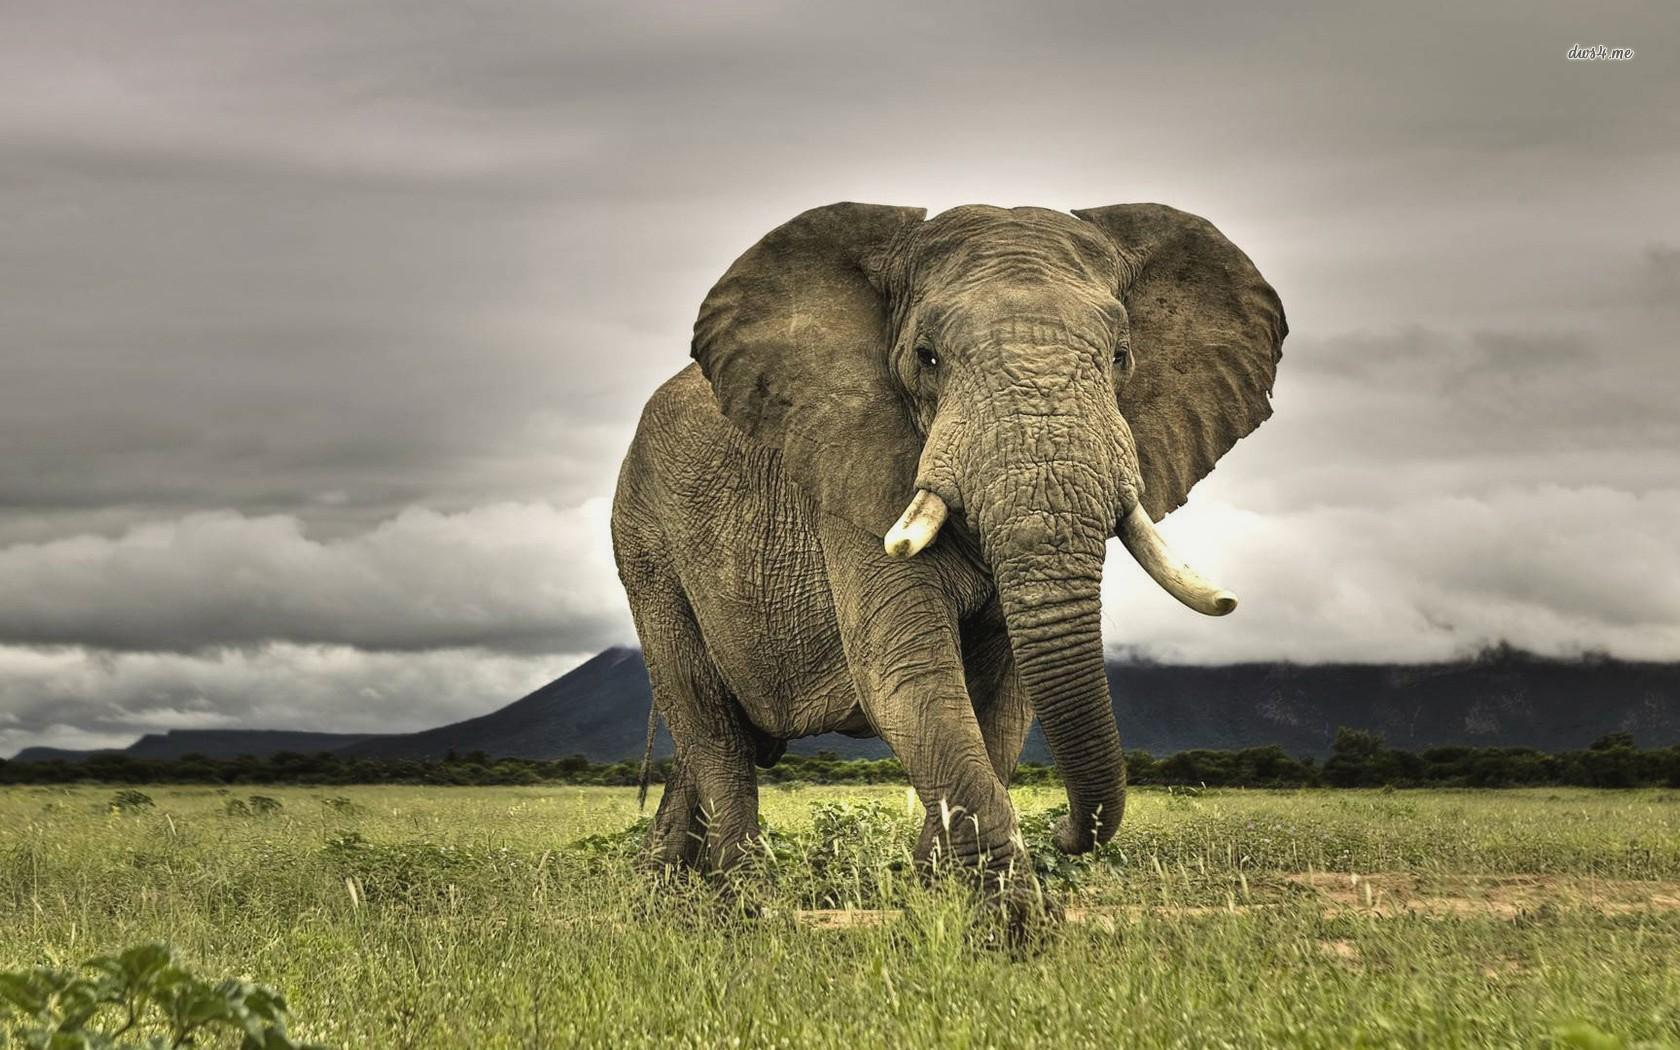 Elephant Wallpapers High Quality